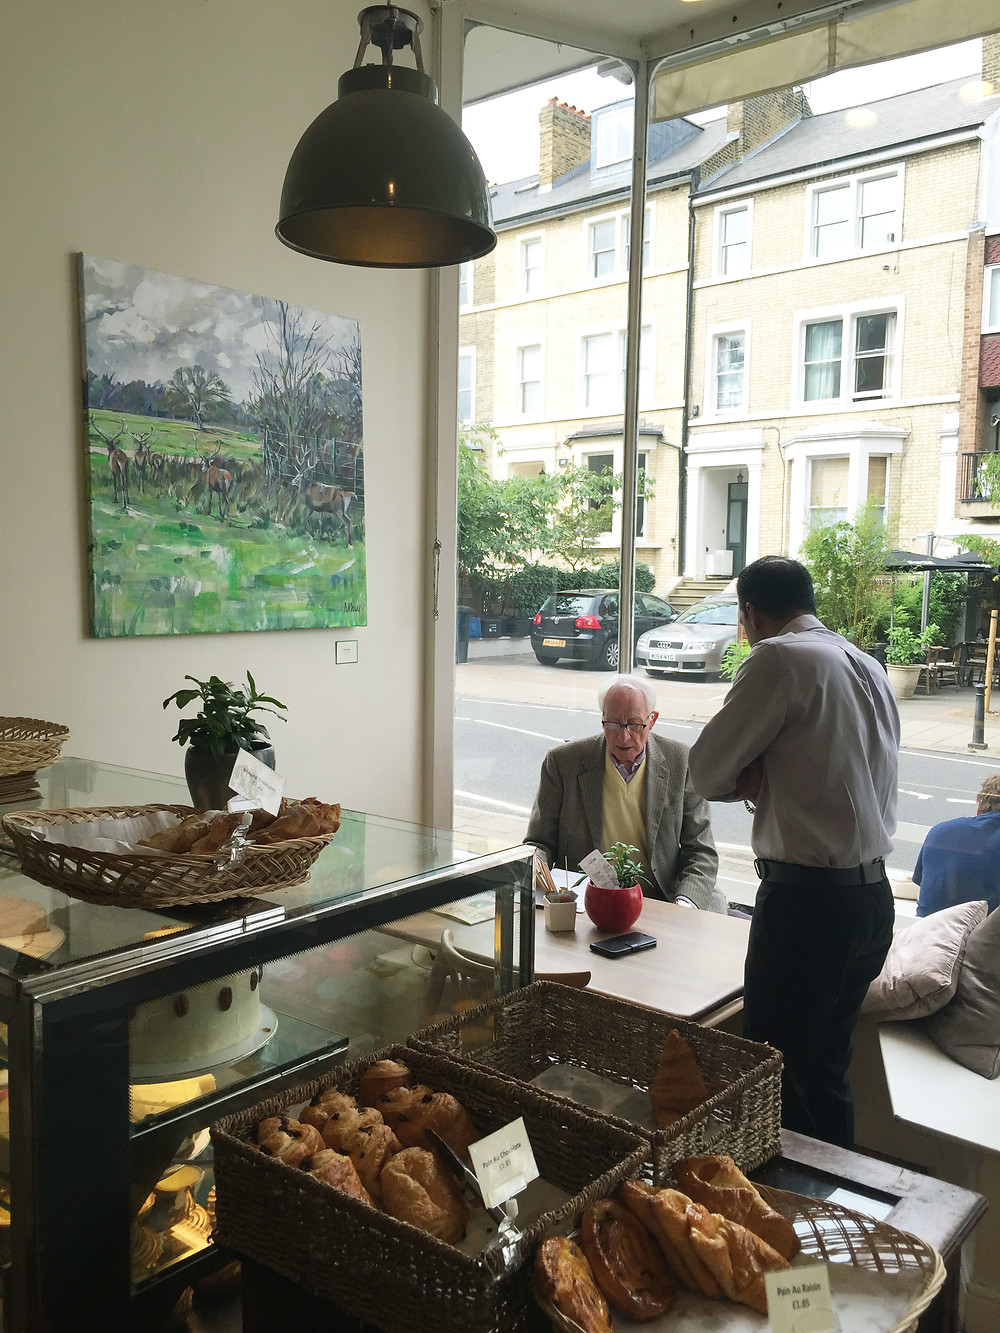 Paintings are now hanging in the richmodn Hill bakery awaiting the Provate View on Thusrday evening. Please contact me to be added to the guerst list.